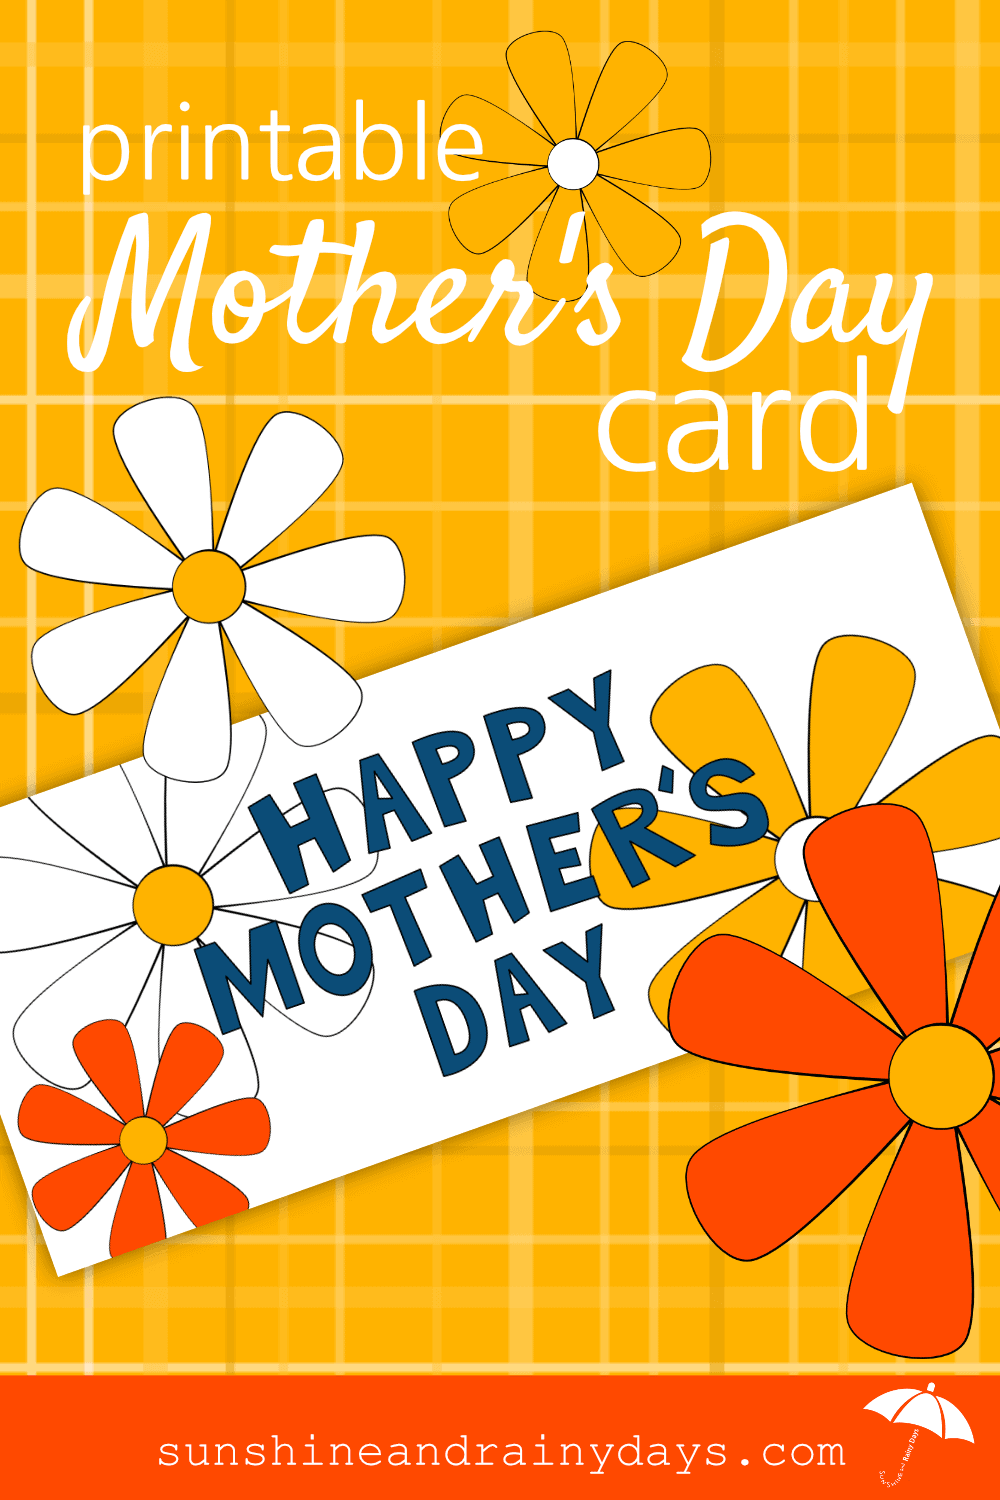 graphic about Printable Mothers Day Cards for Wife called Printable Moms Working day Card -